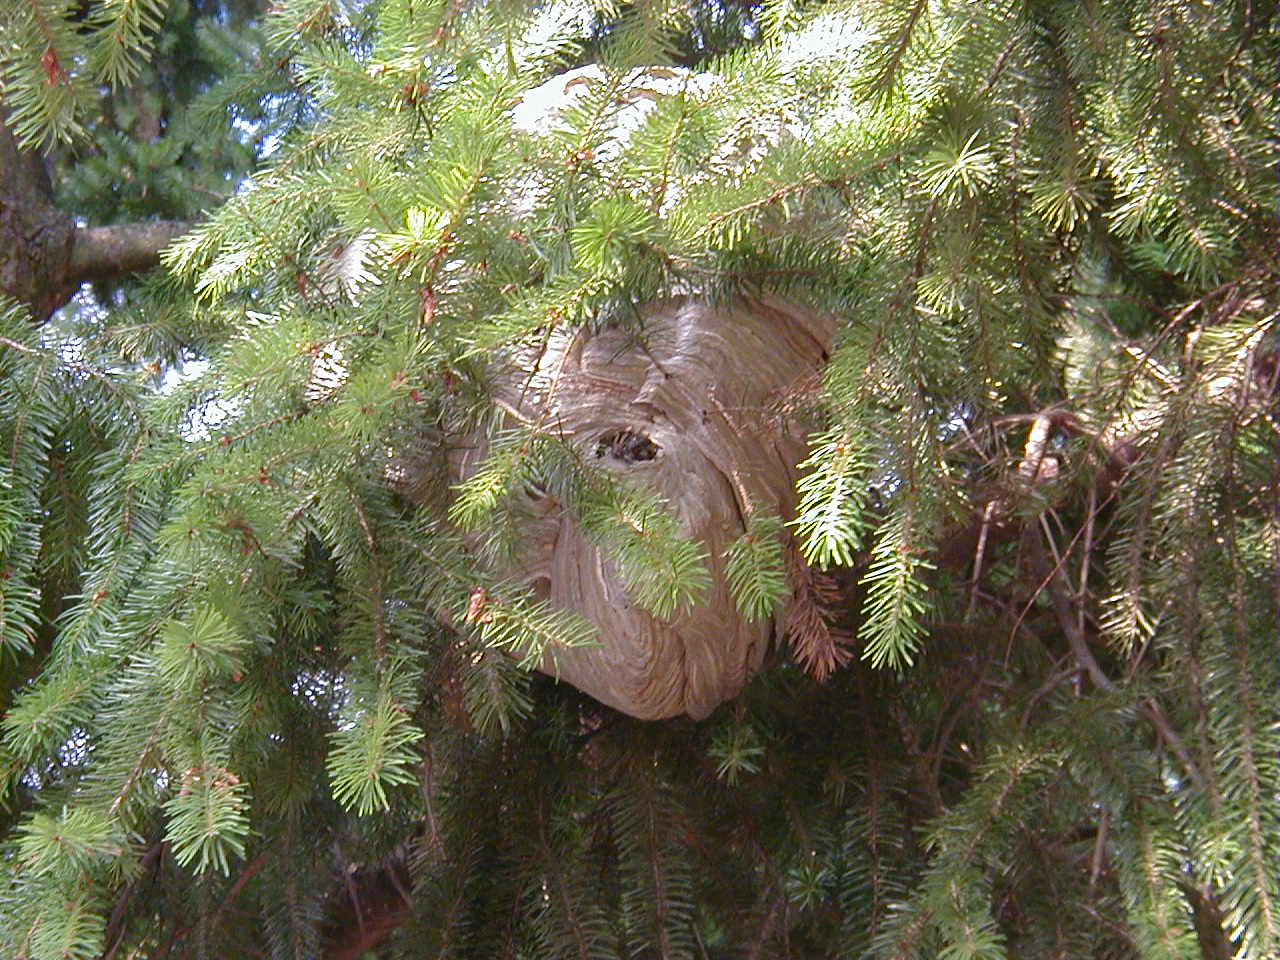 Nest with branches through it